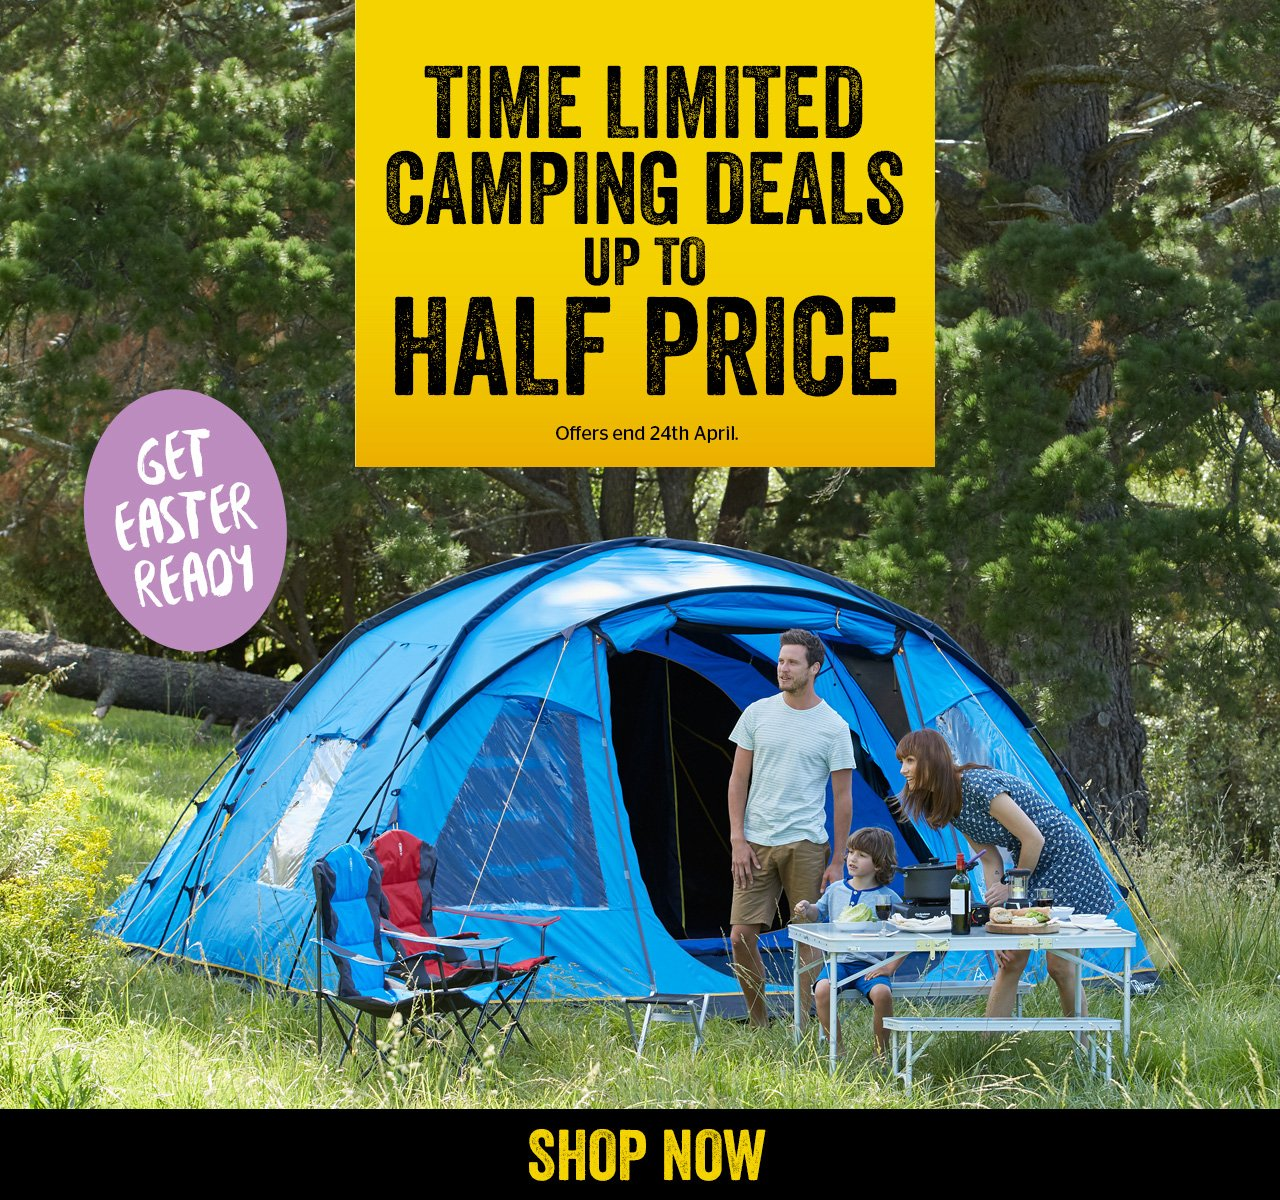 Time Limited Camping Deals